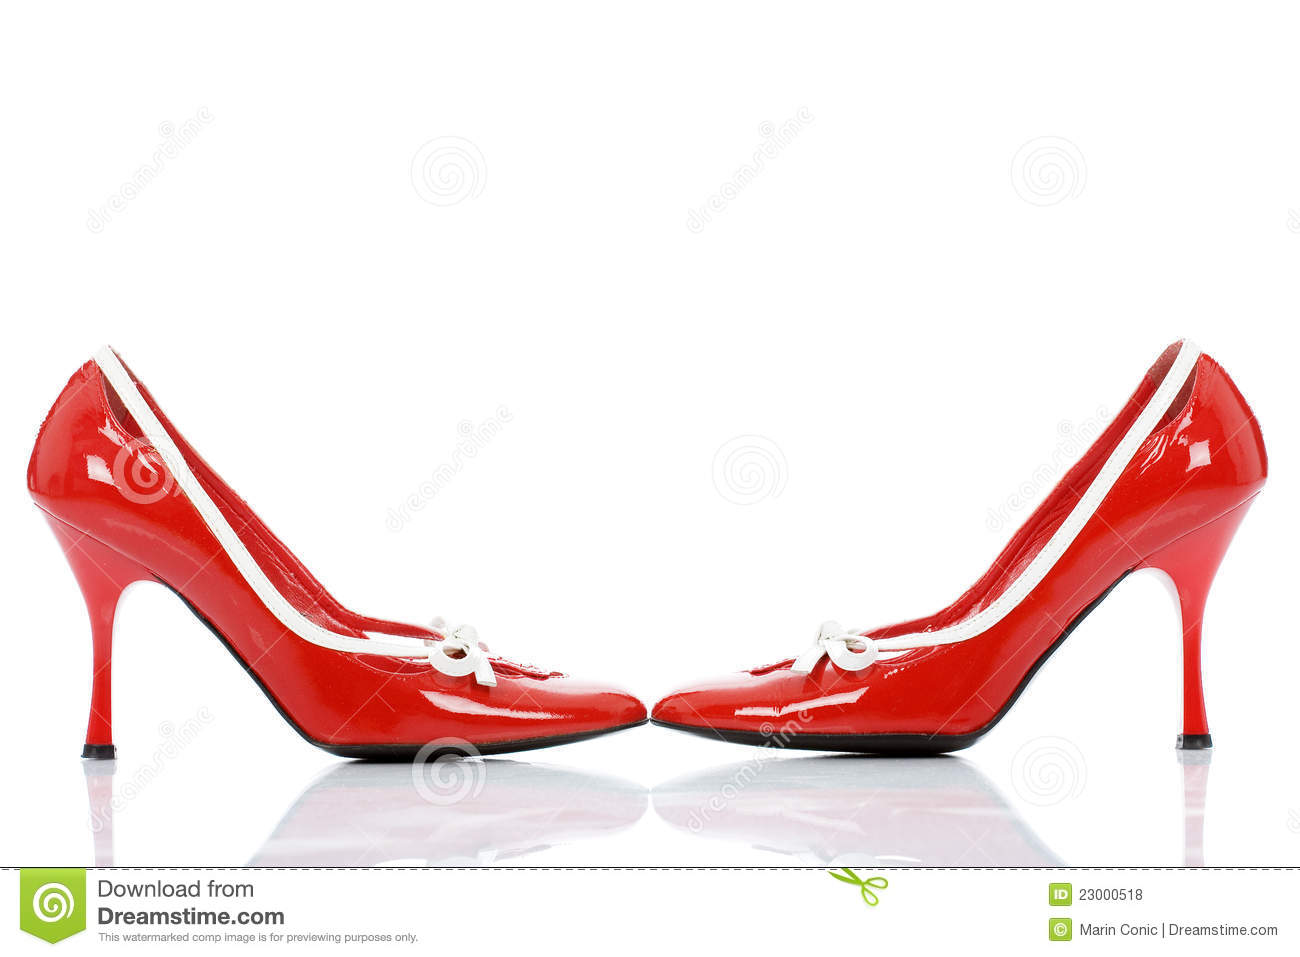 Red shiny shoes isolated on white background